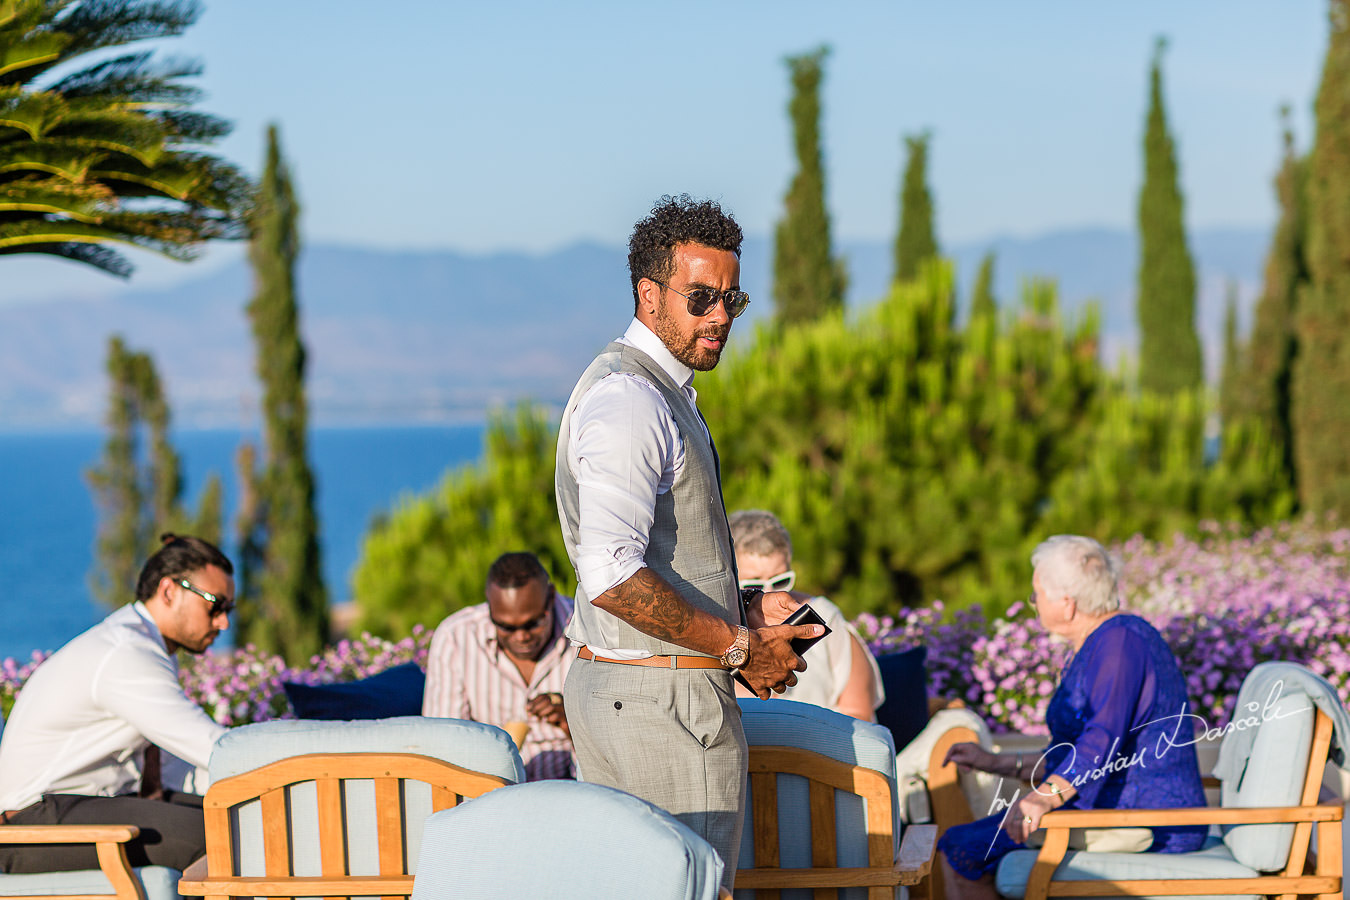 The father of the baby just Christened at the beautiful Anassa Hotel photographed by Cyprus Photographer Cristian Dascalu.